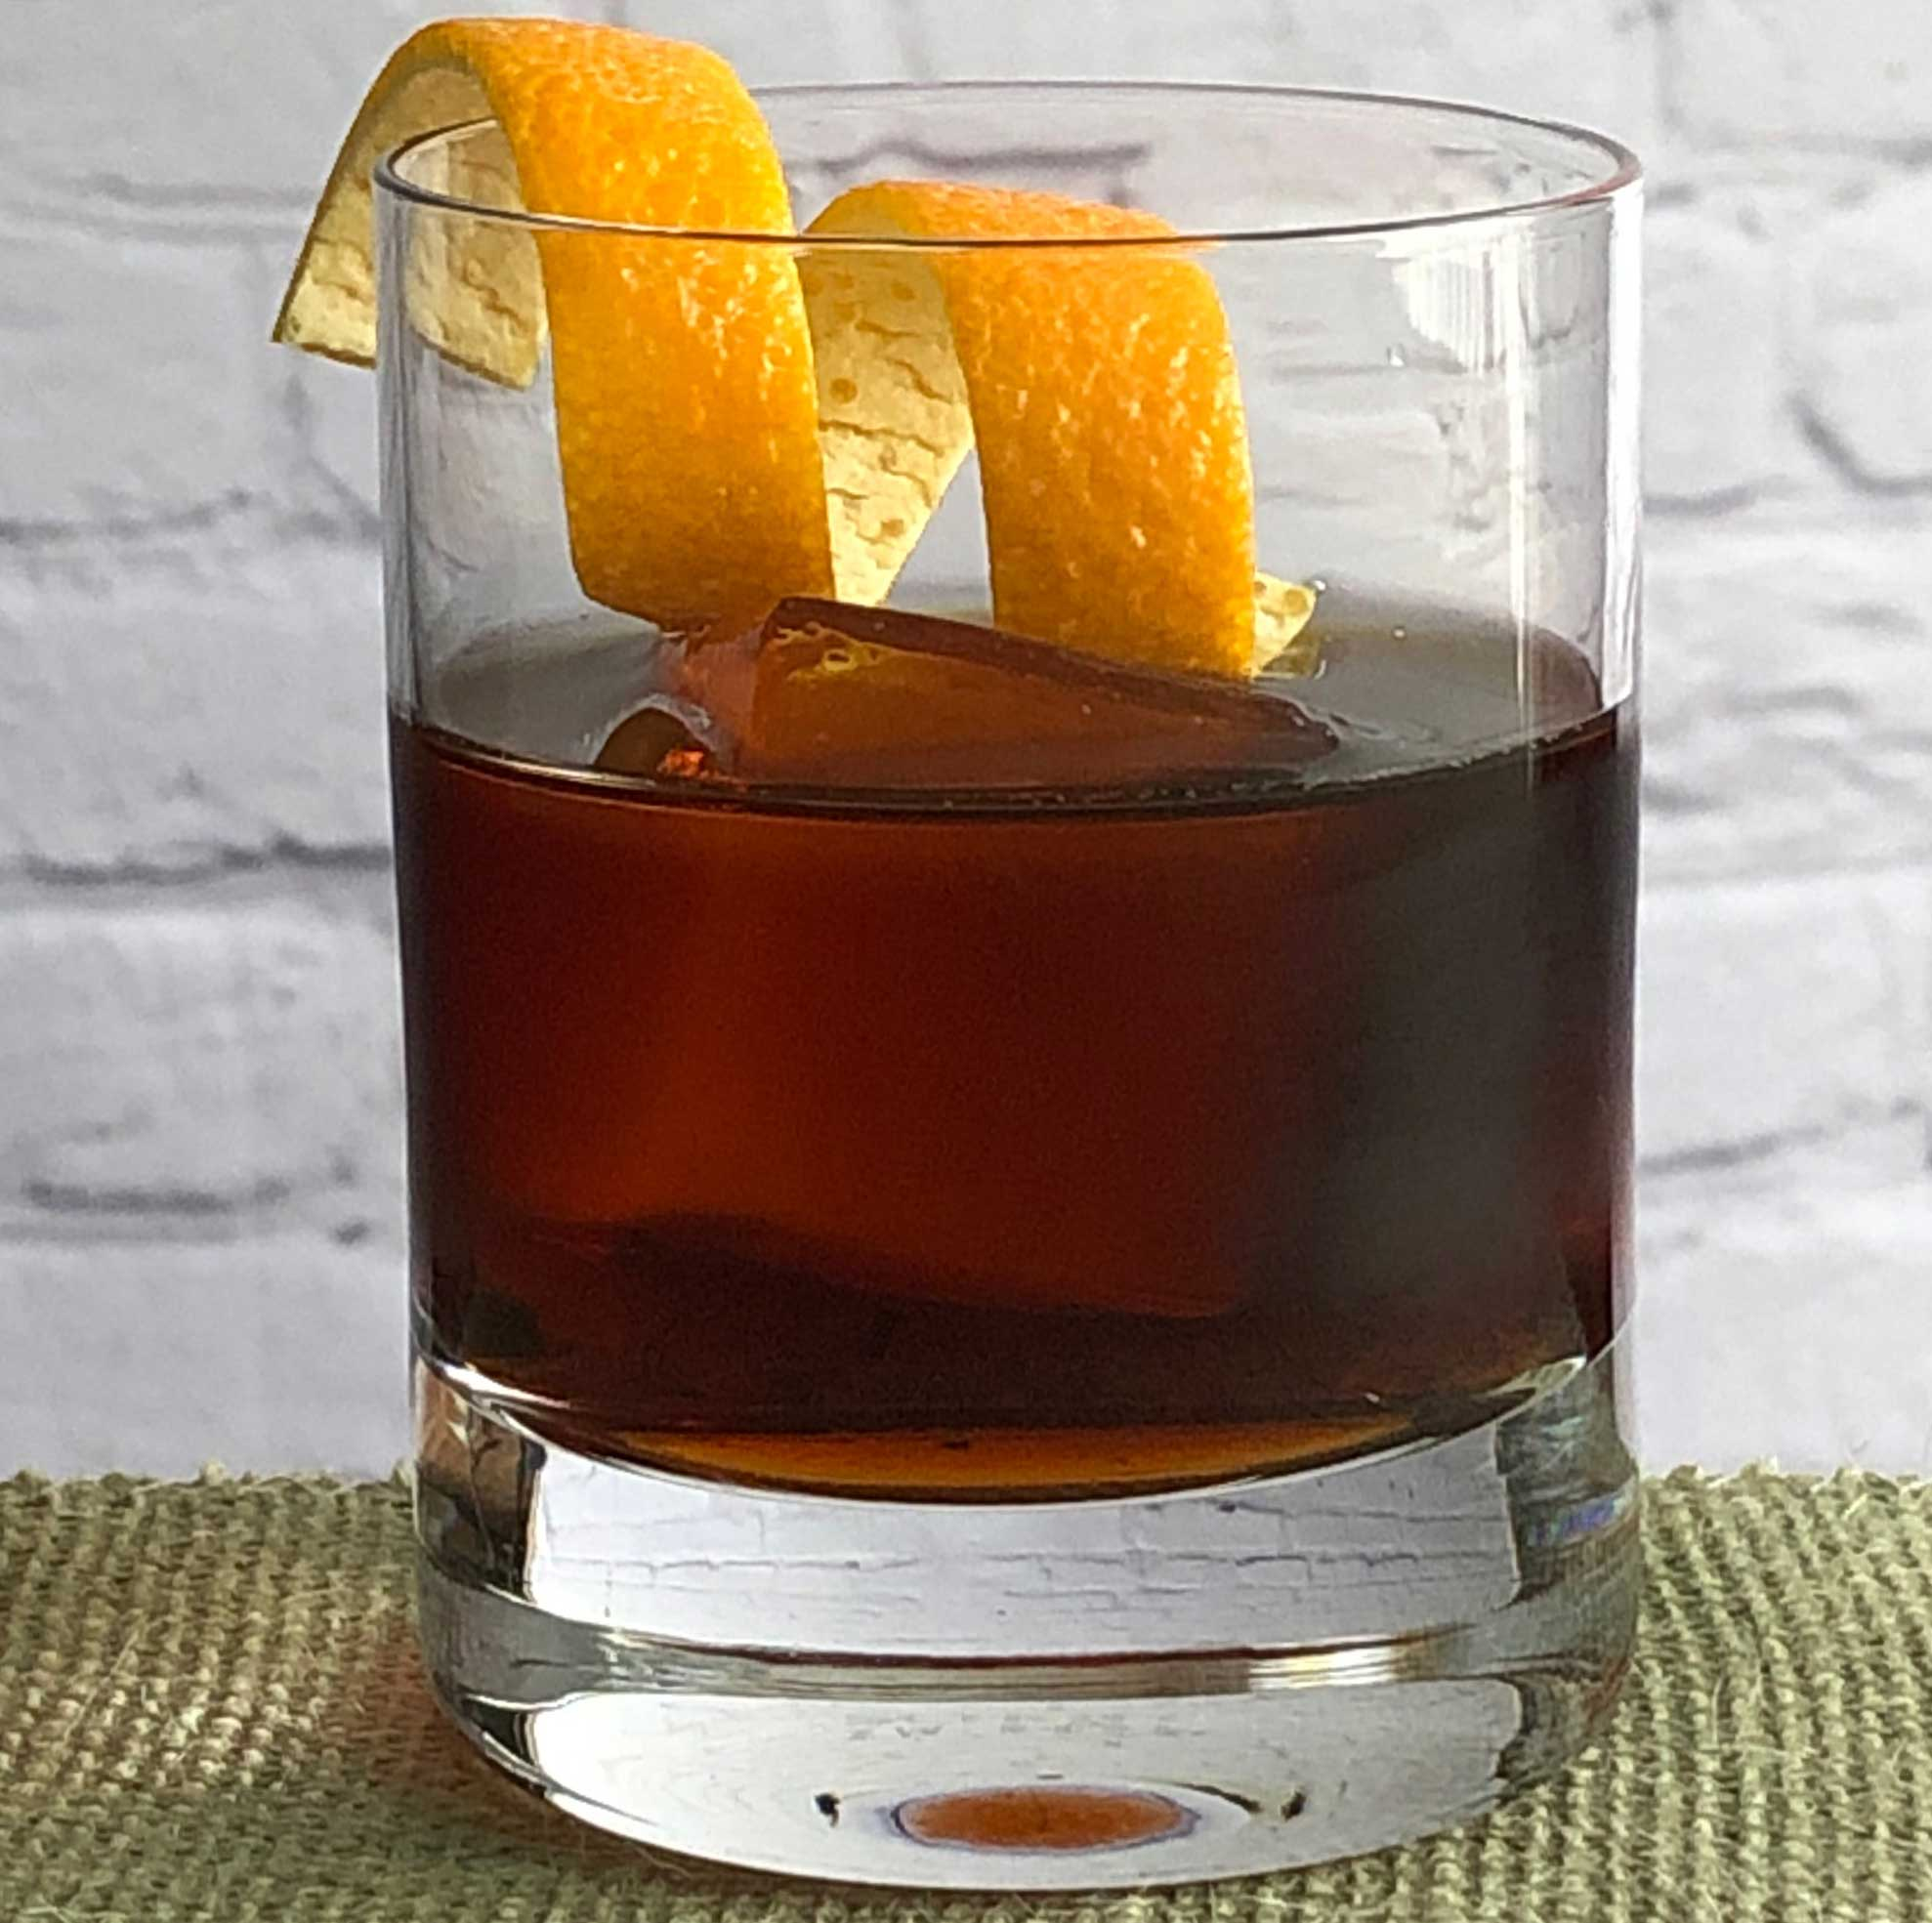 An example of the Amaricanto, the mixed drink (cocktail) featuring Cocchi Vermouth di Torino, Elisir Novasalus, and orange bitters; photo by Lee Edwards